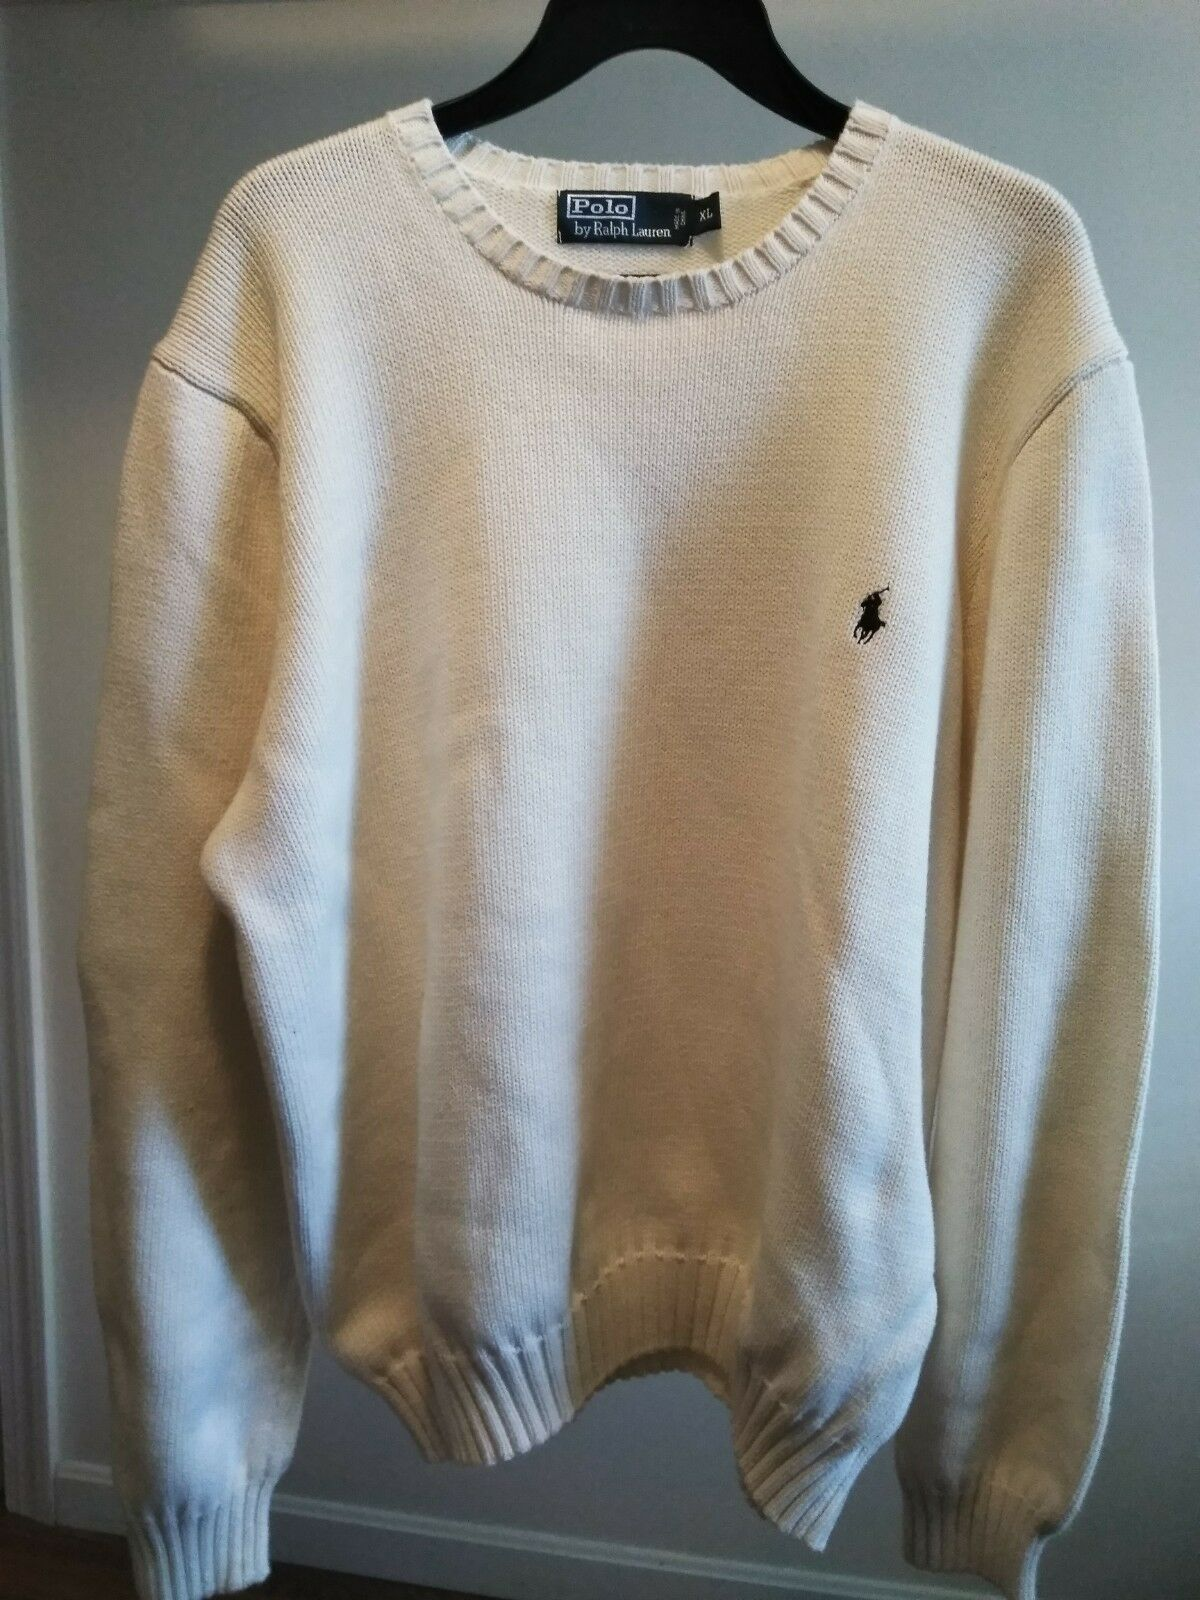 Polo sweater, xlg, tan new condition no defects